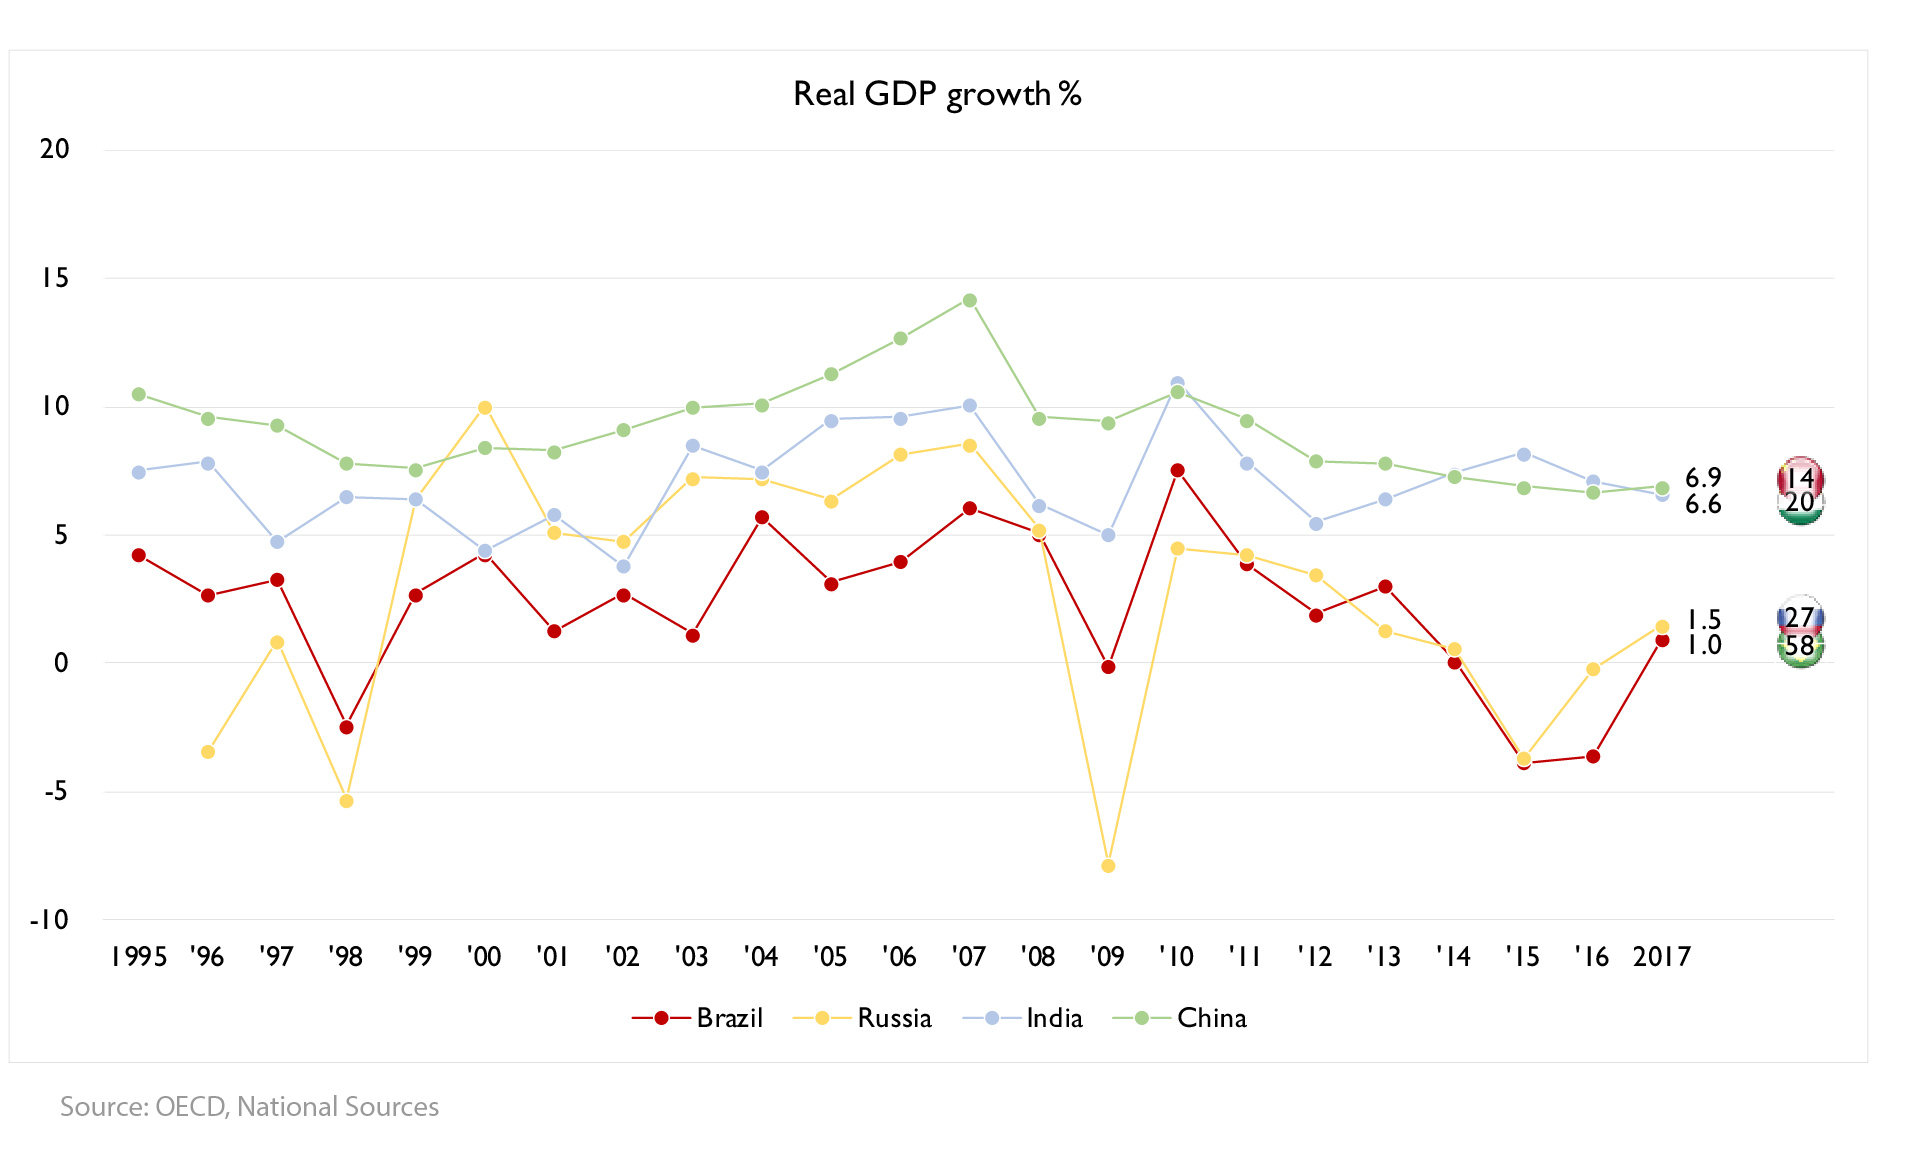 Figure 2: Real GDP growth for the BRIC 1995-2017